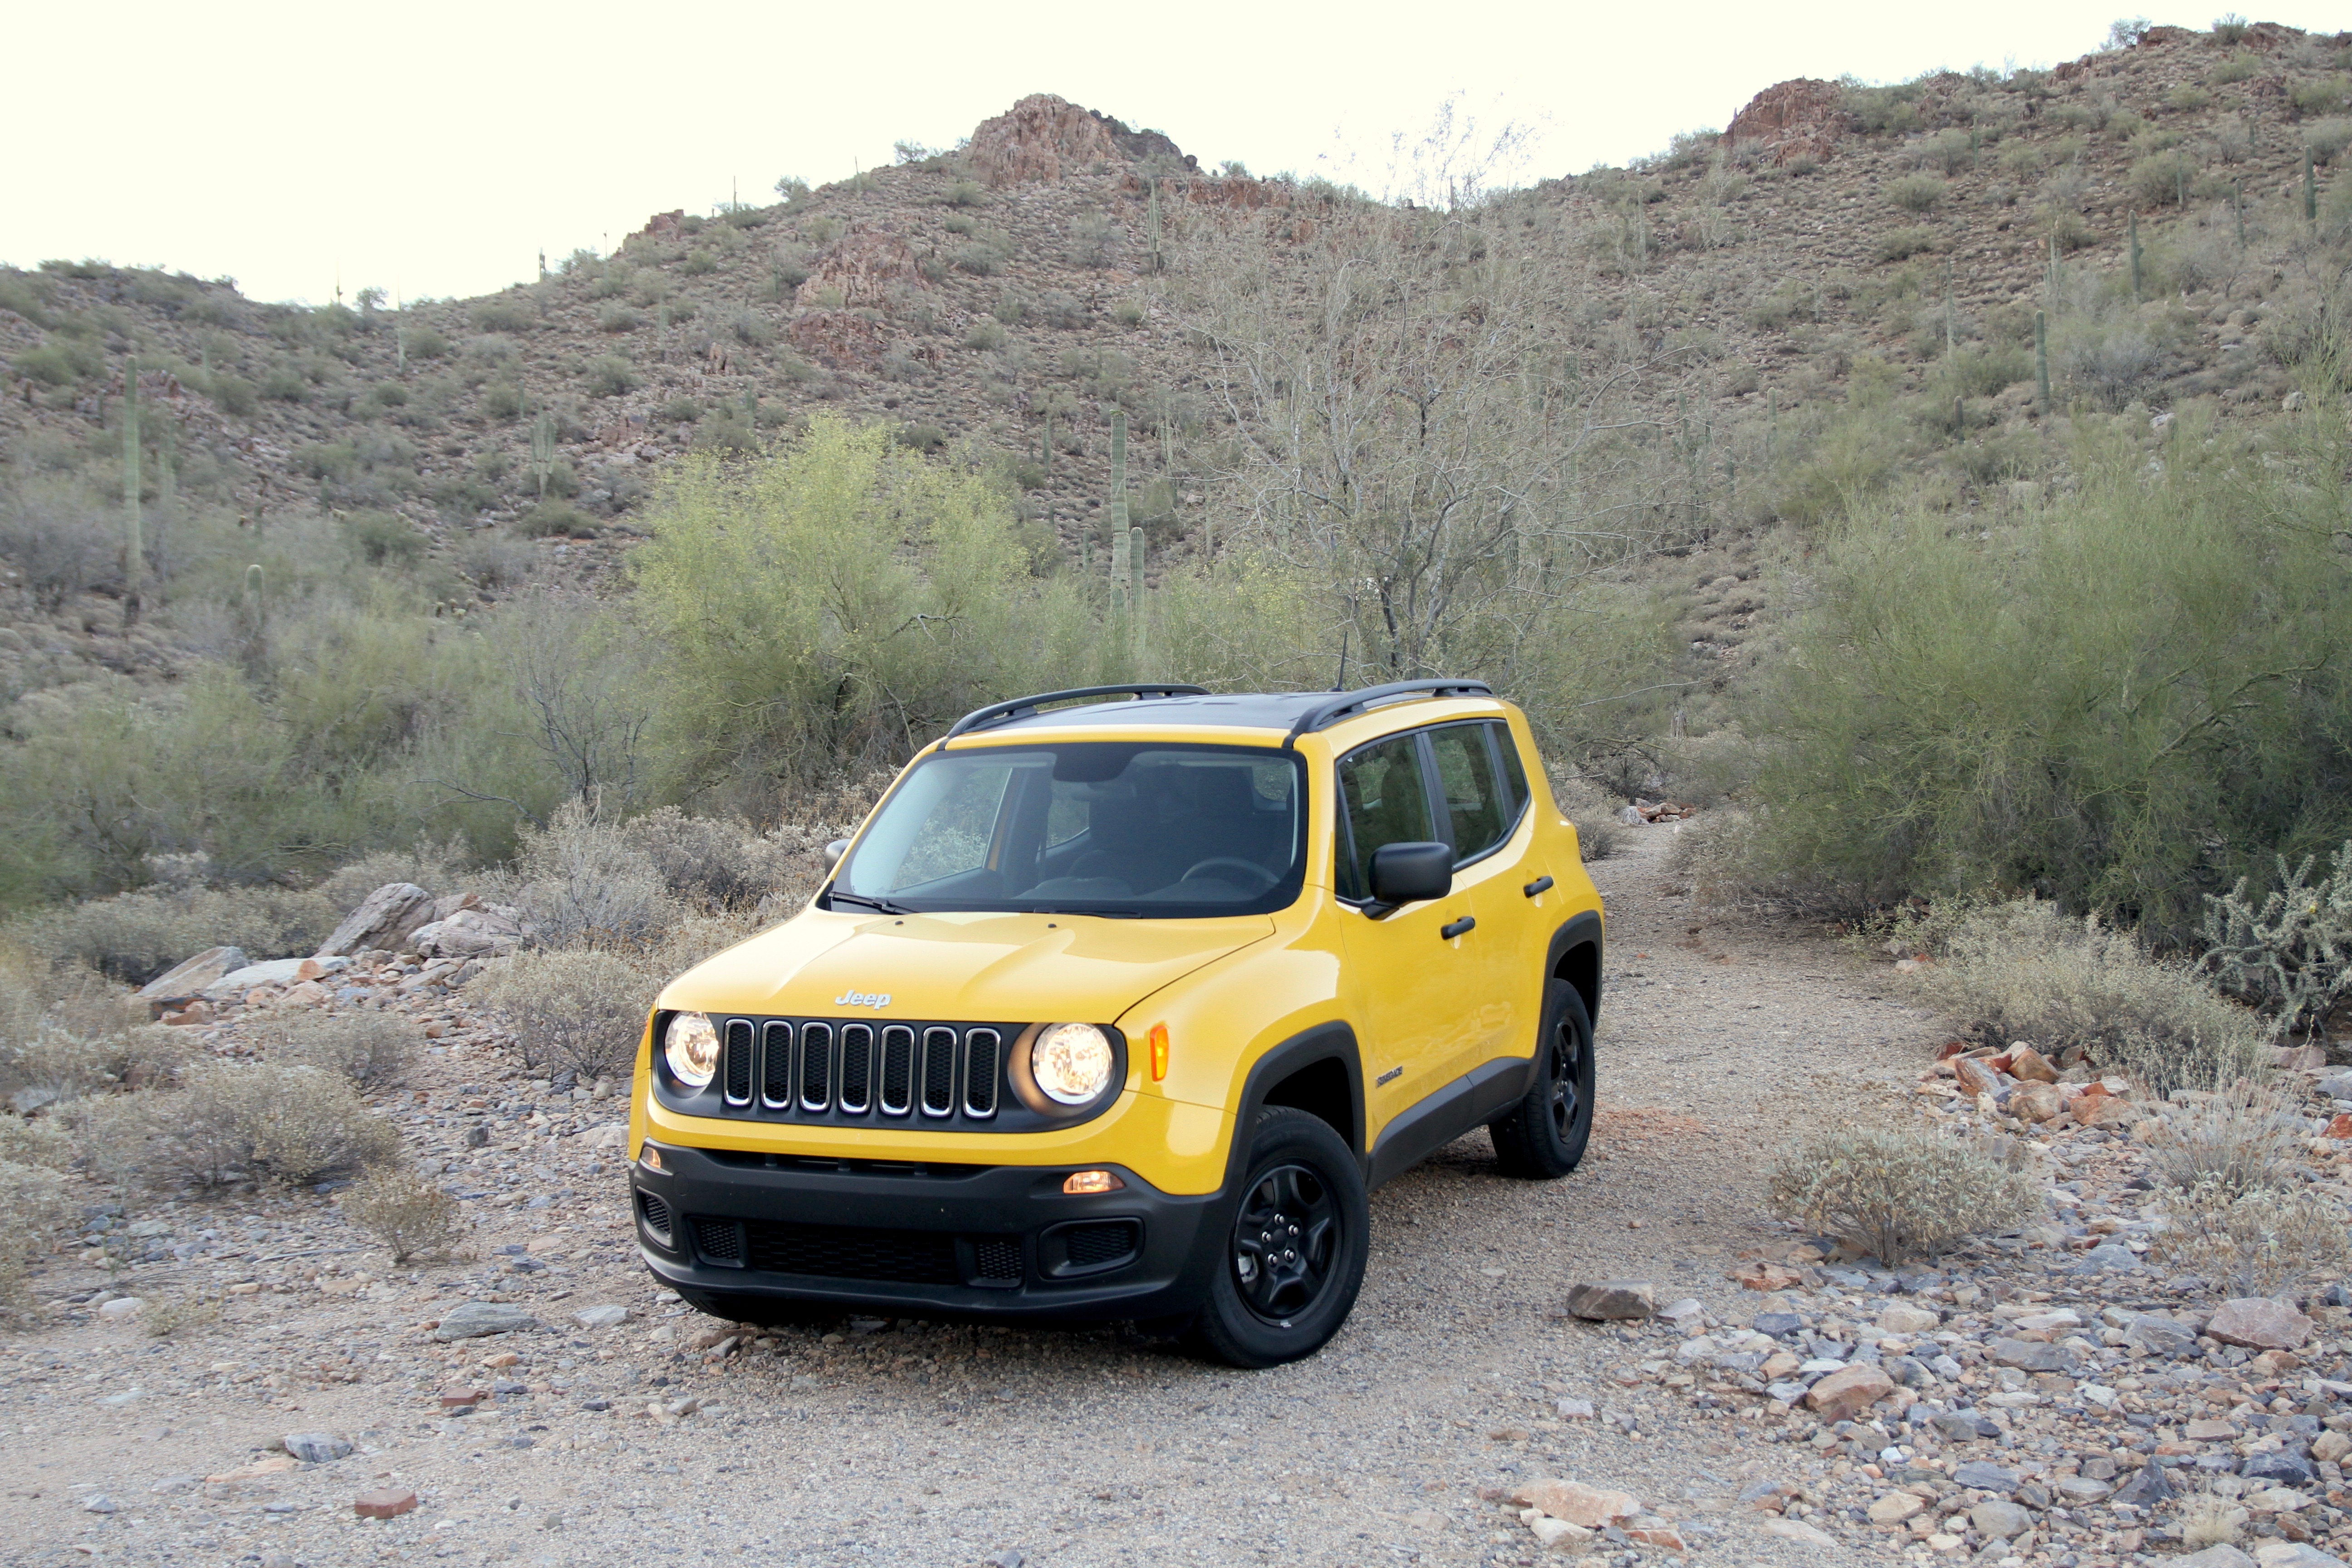 More than a box on wheels: the Italian-built Renegade Sport offers an affordable, versatile, and cheeky variation on the strong Jeep theme.